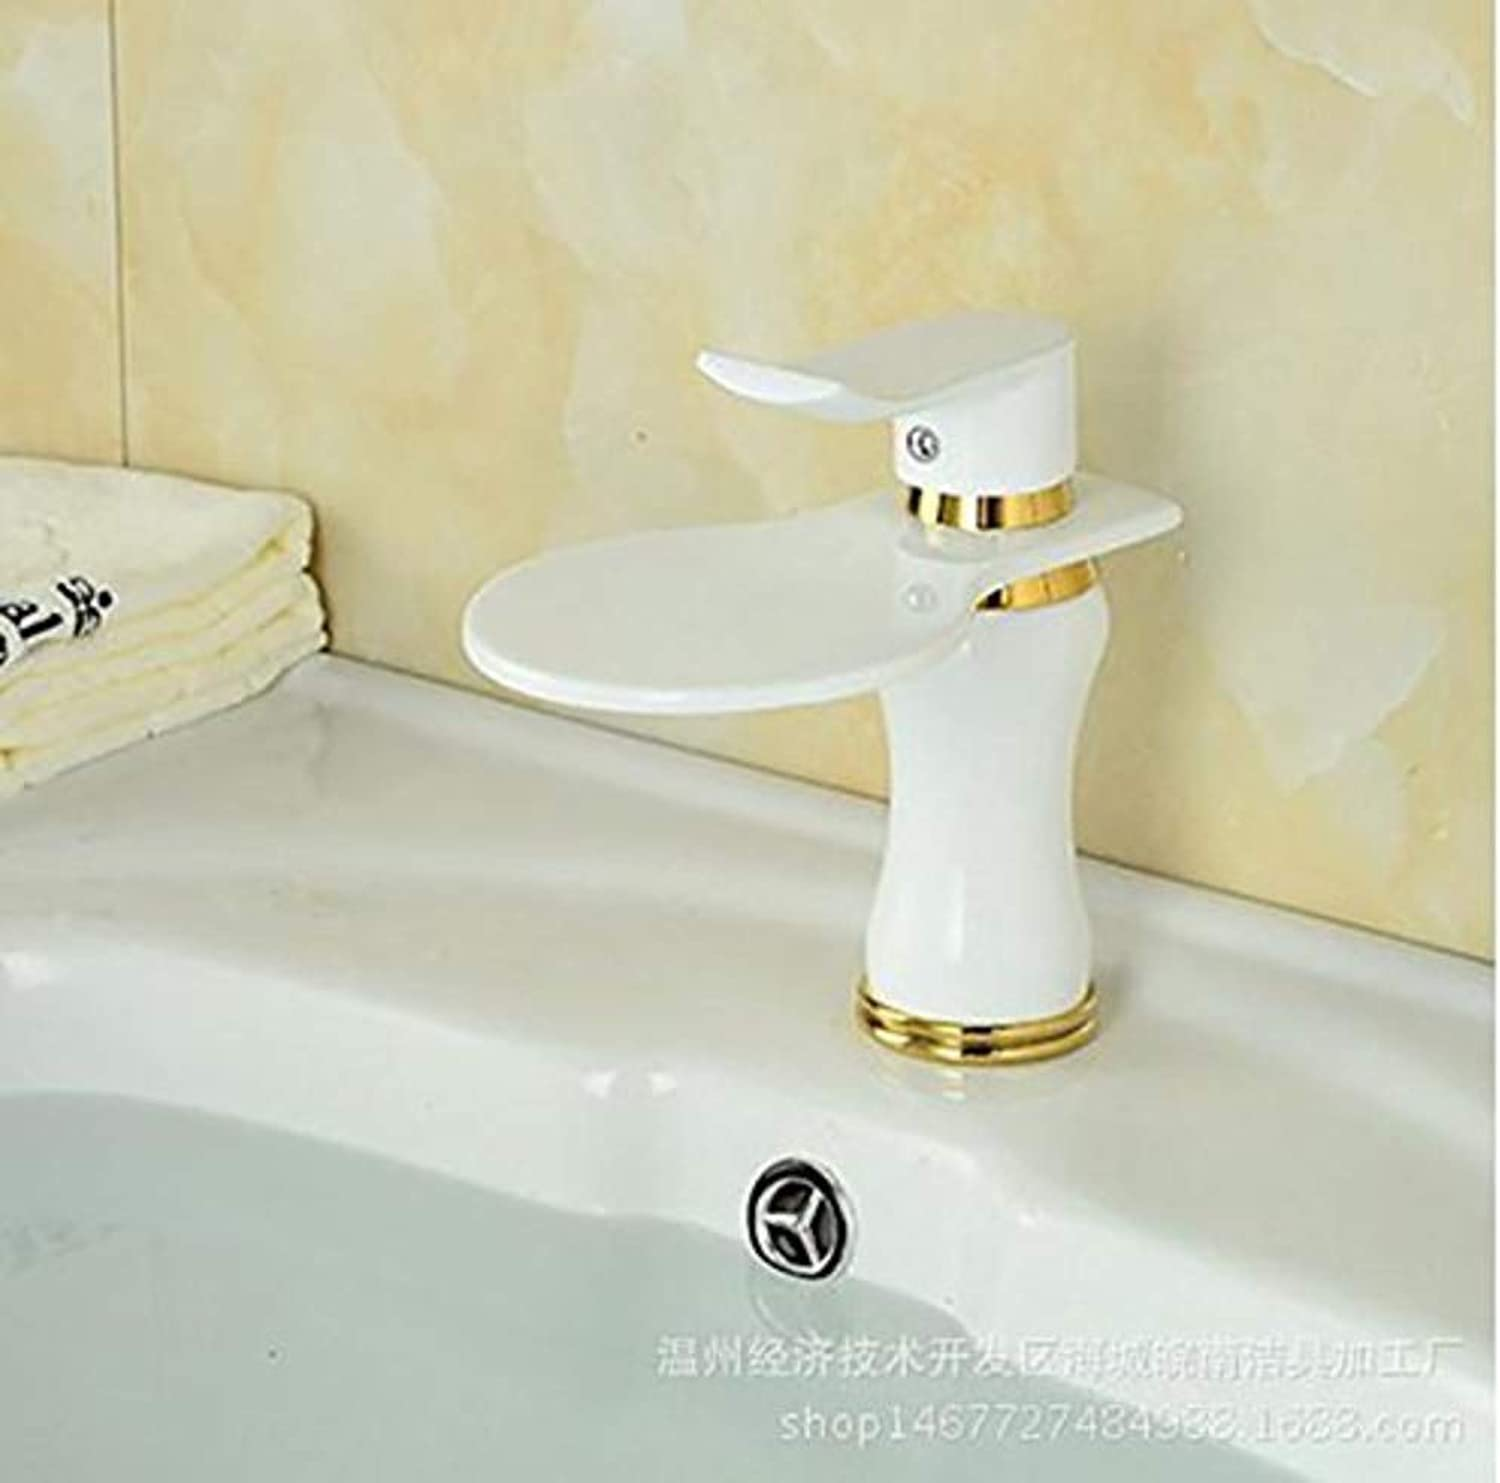 Water Tapwhite Hot and Cold Modern Taps Kitchen Brass Faucet Bathroom Sink Basin Waterfall Tap Mixer Water Washroom Bath Tub Shower